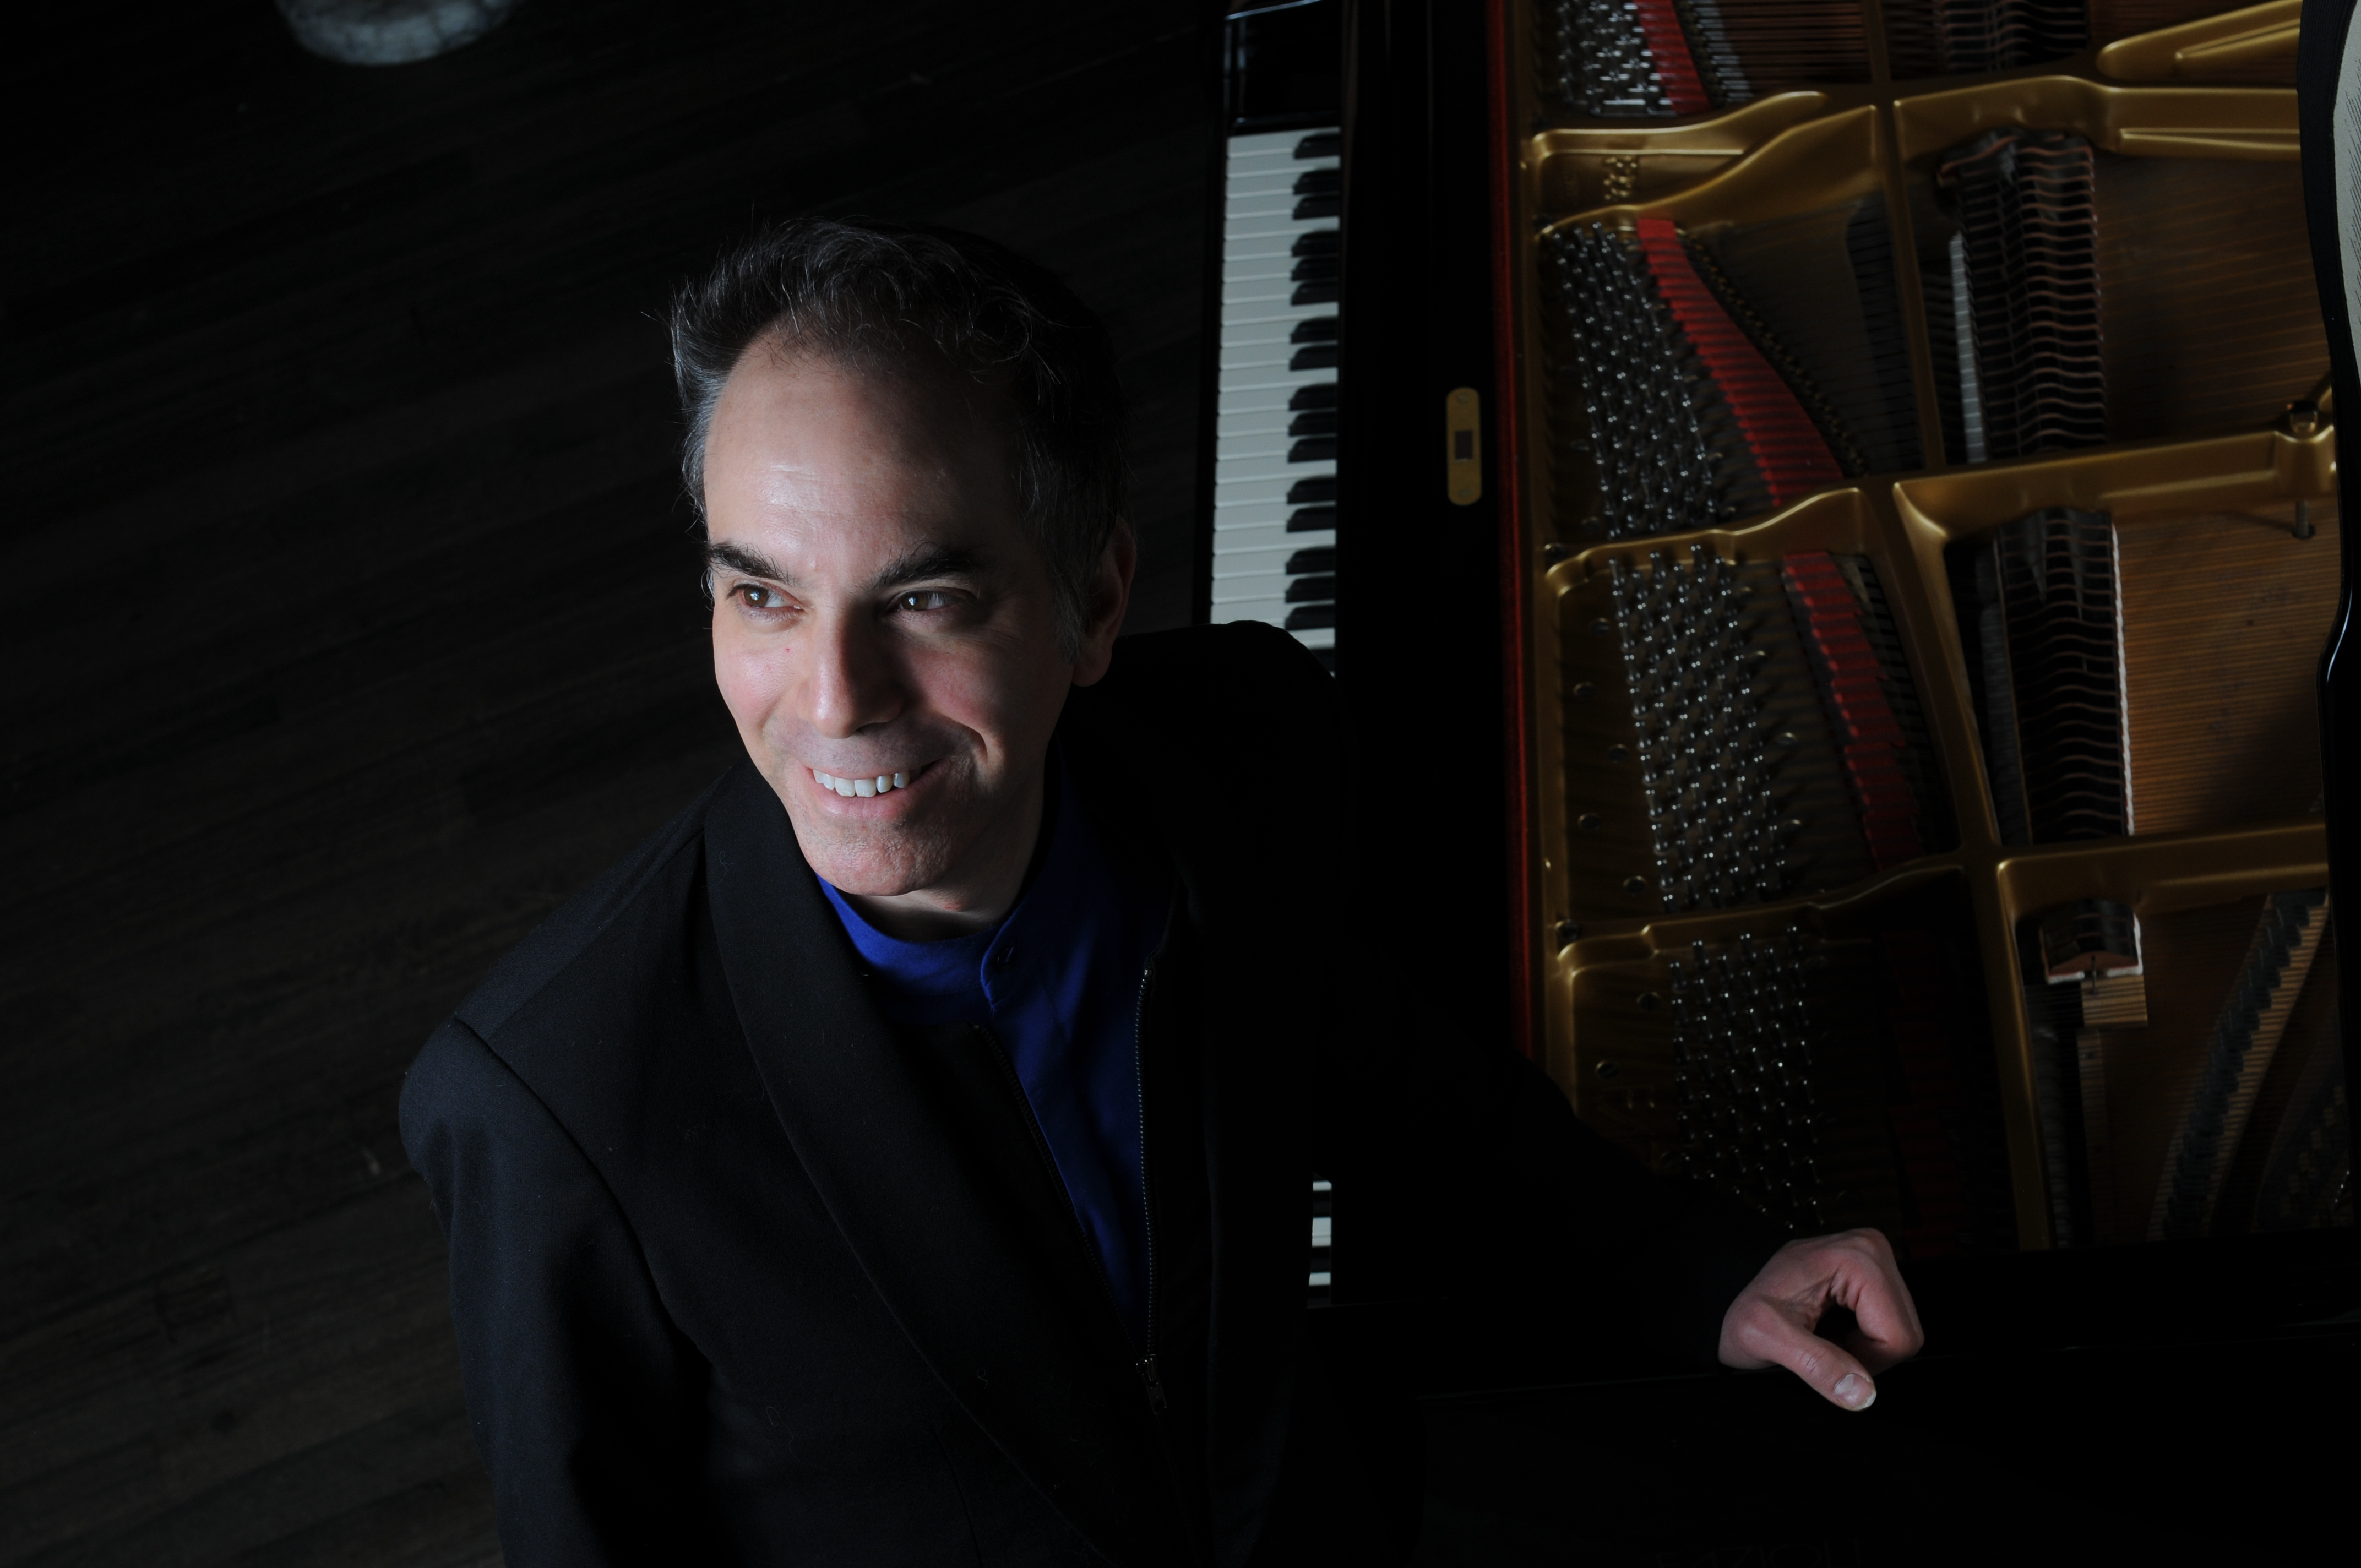 REVIEW: Pianist Matt Herskowitz's reviewed by Next Bop